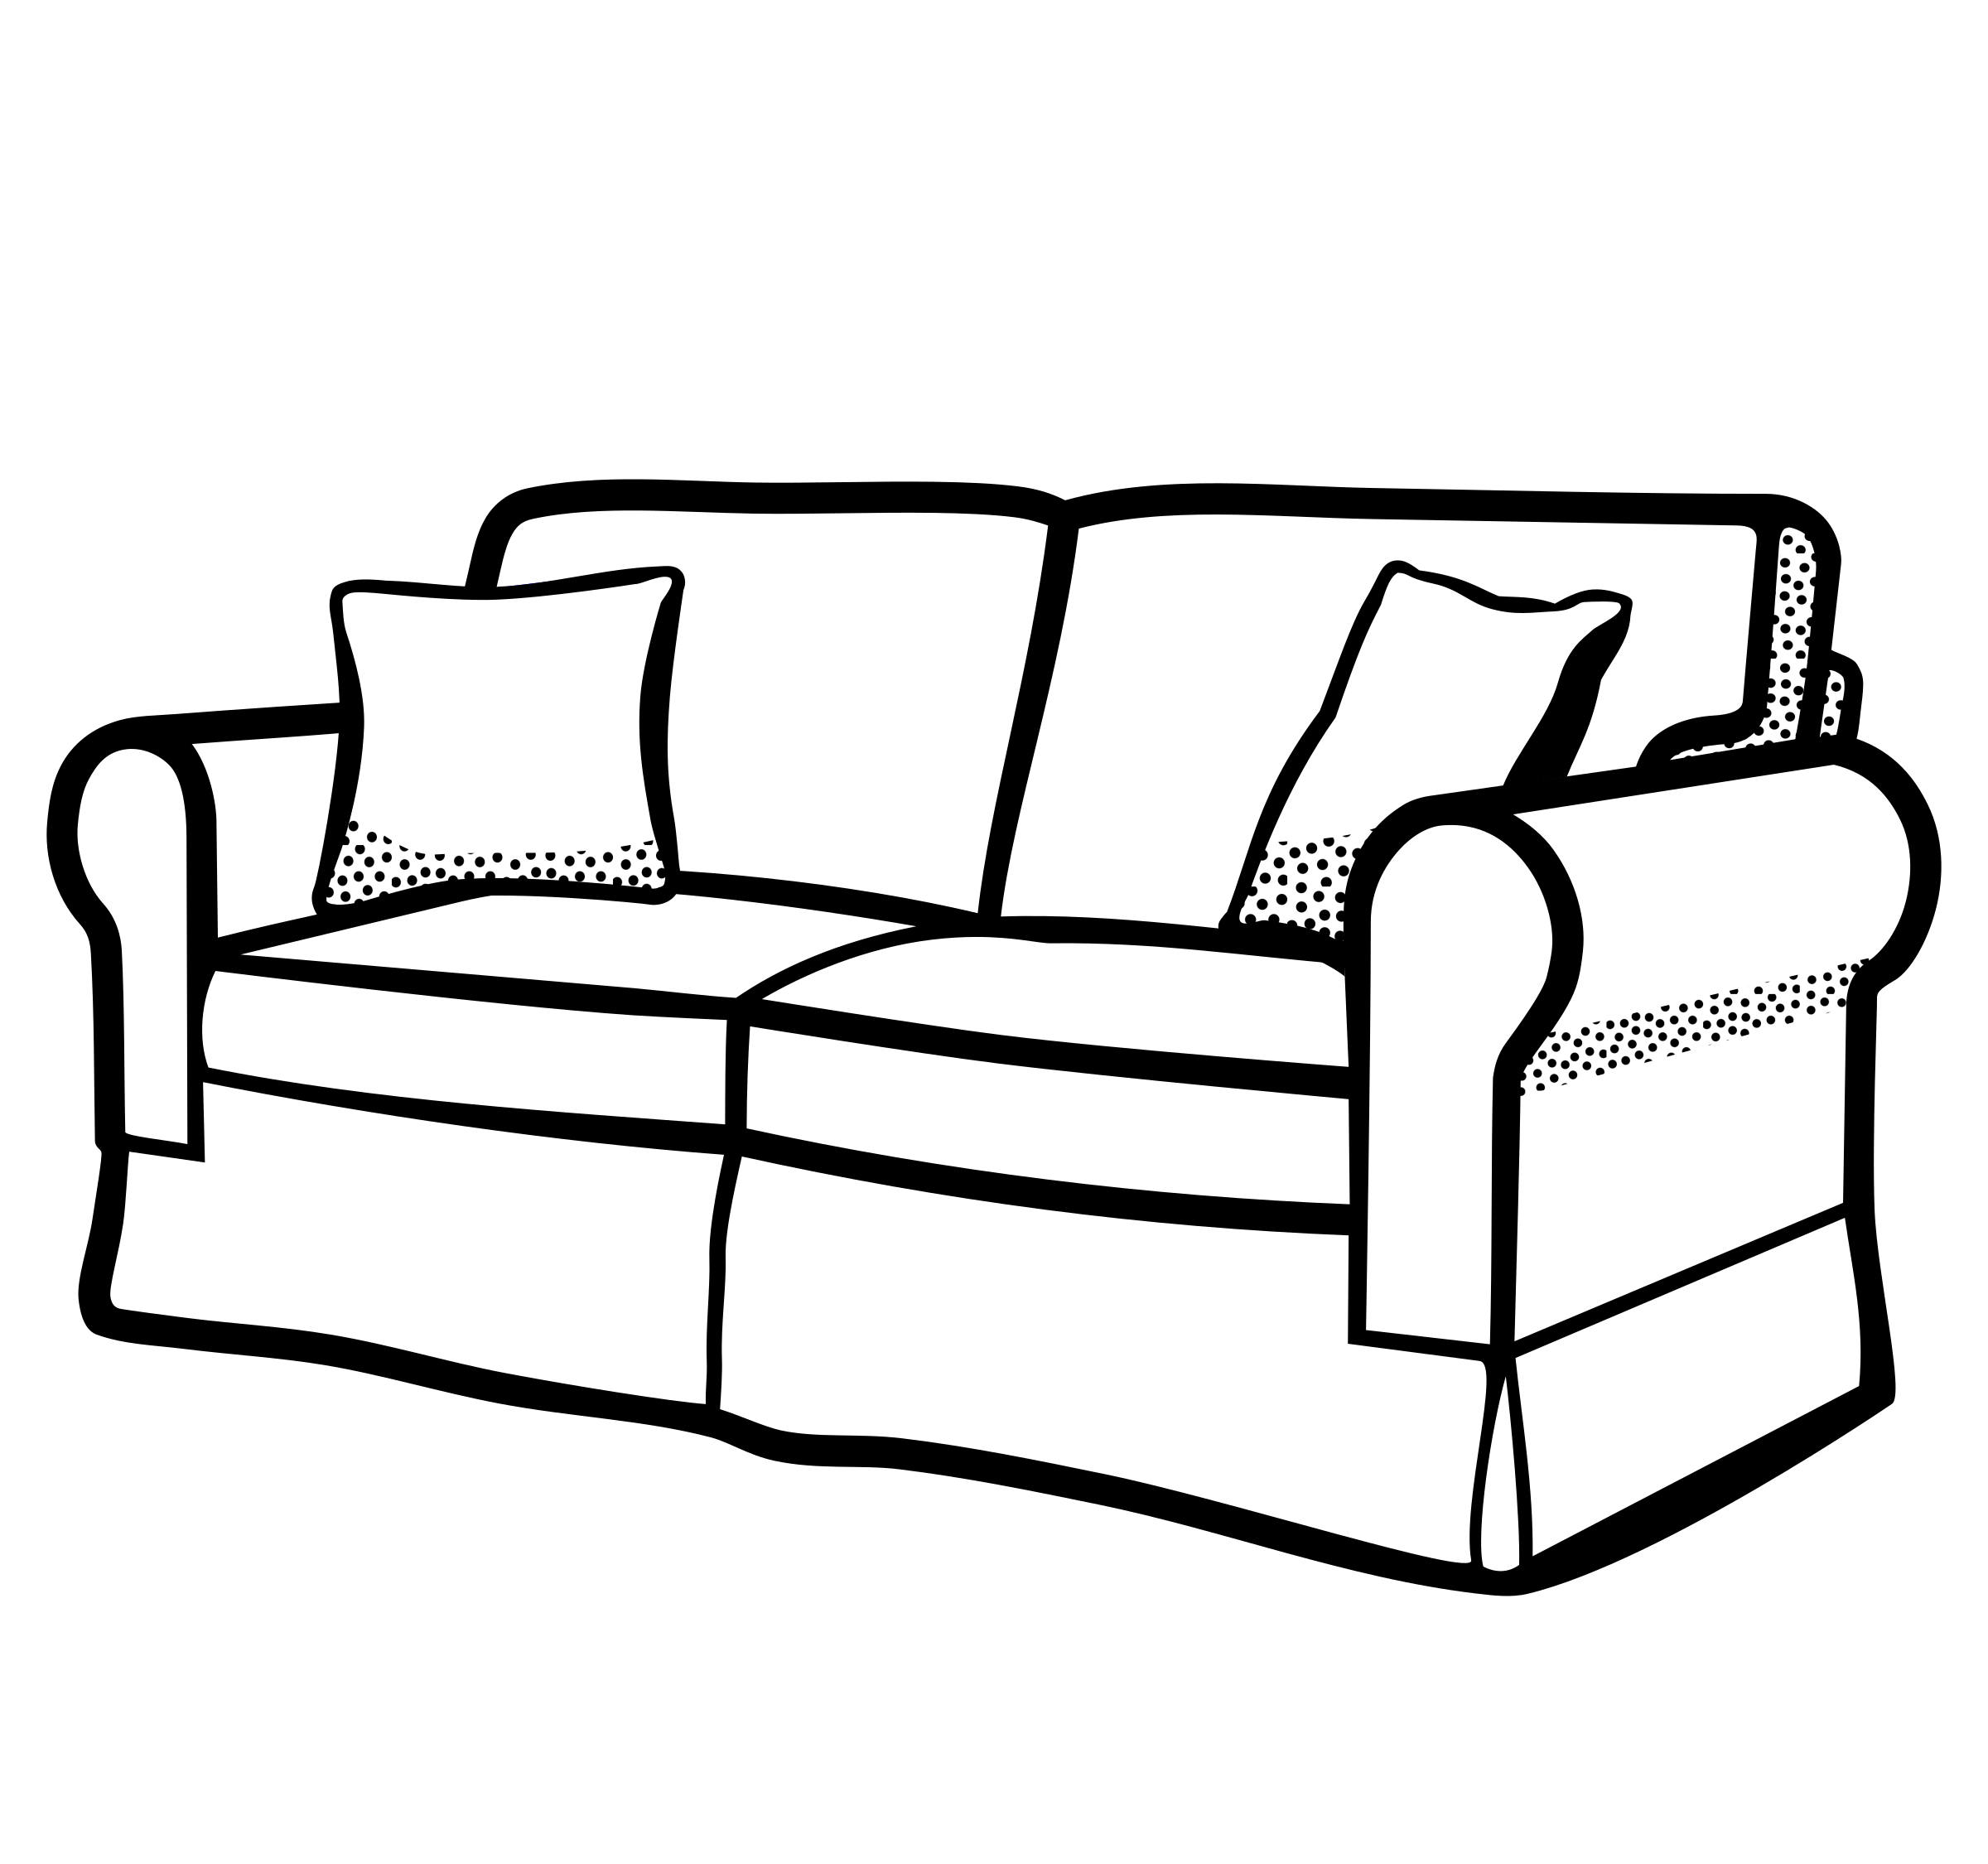 Simple couch at getdrawings. Drawing bed black and white clipart free stock